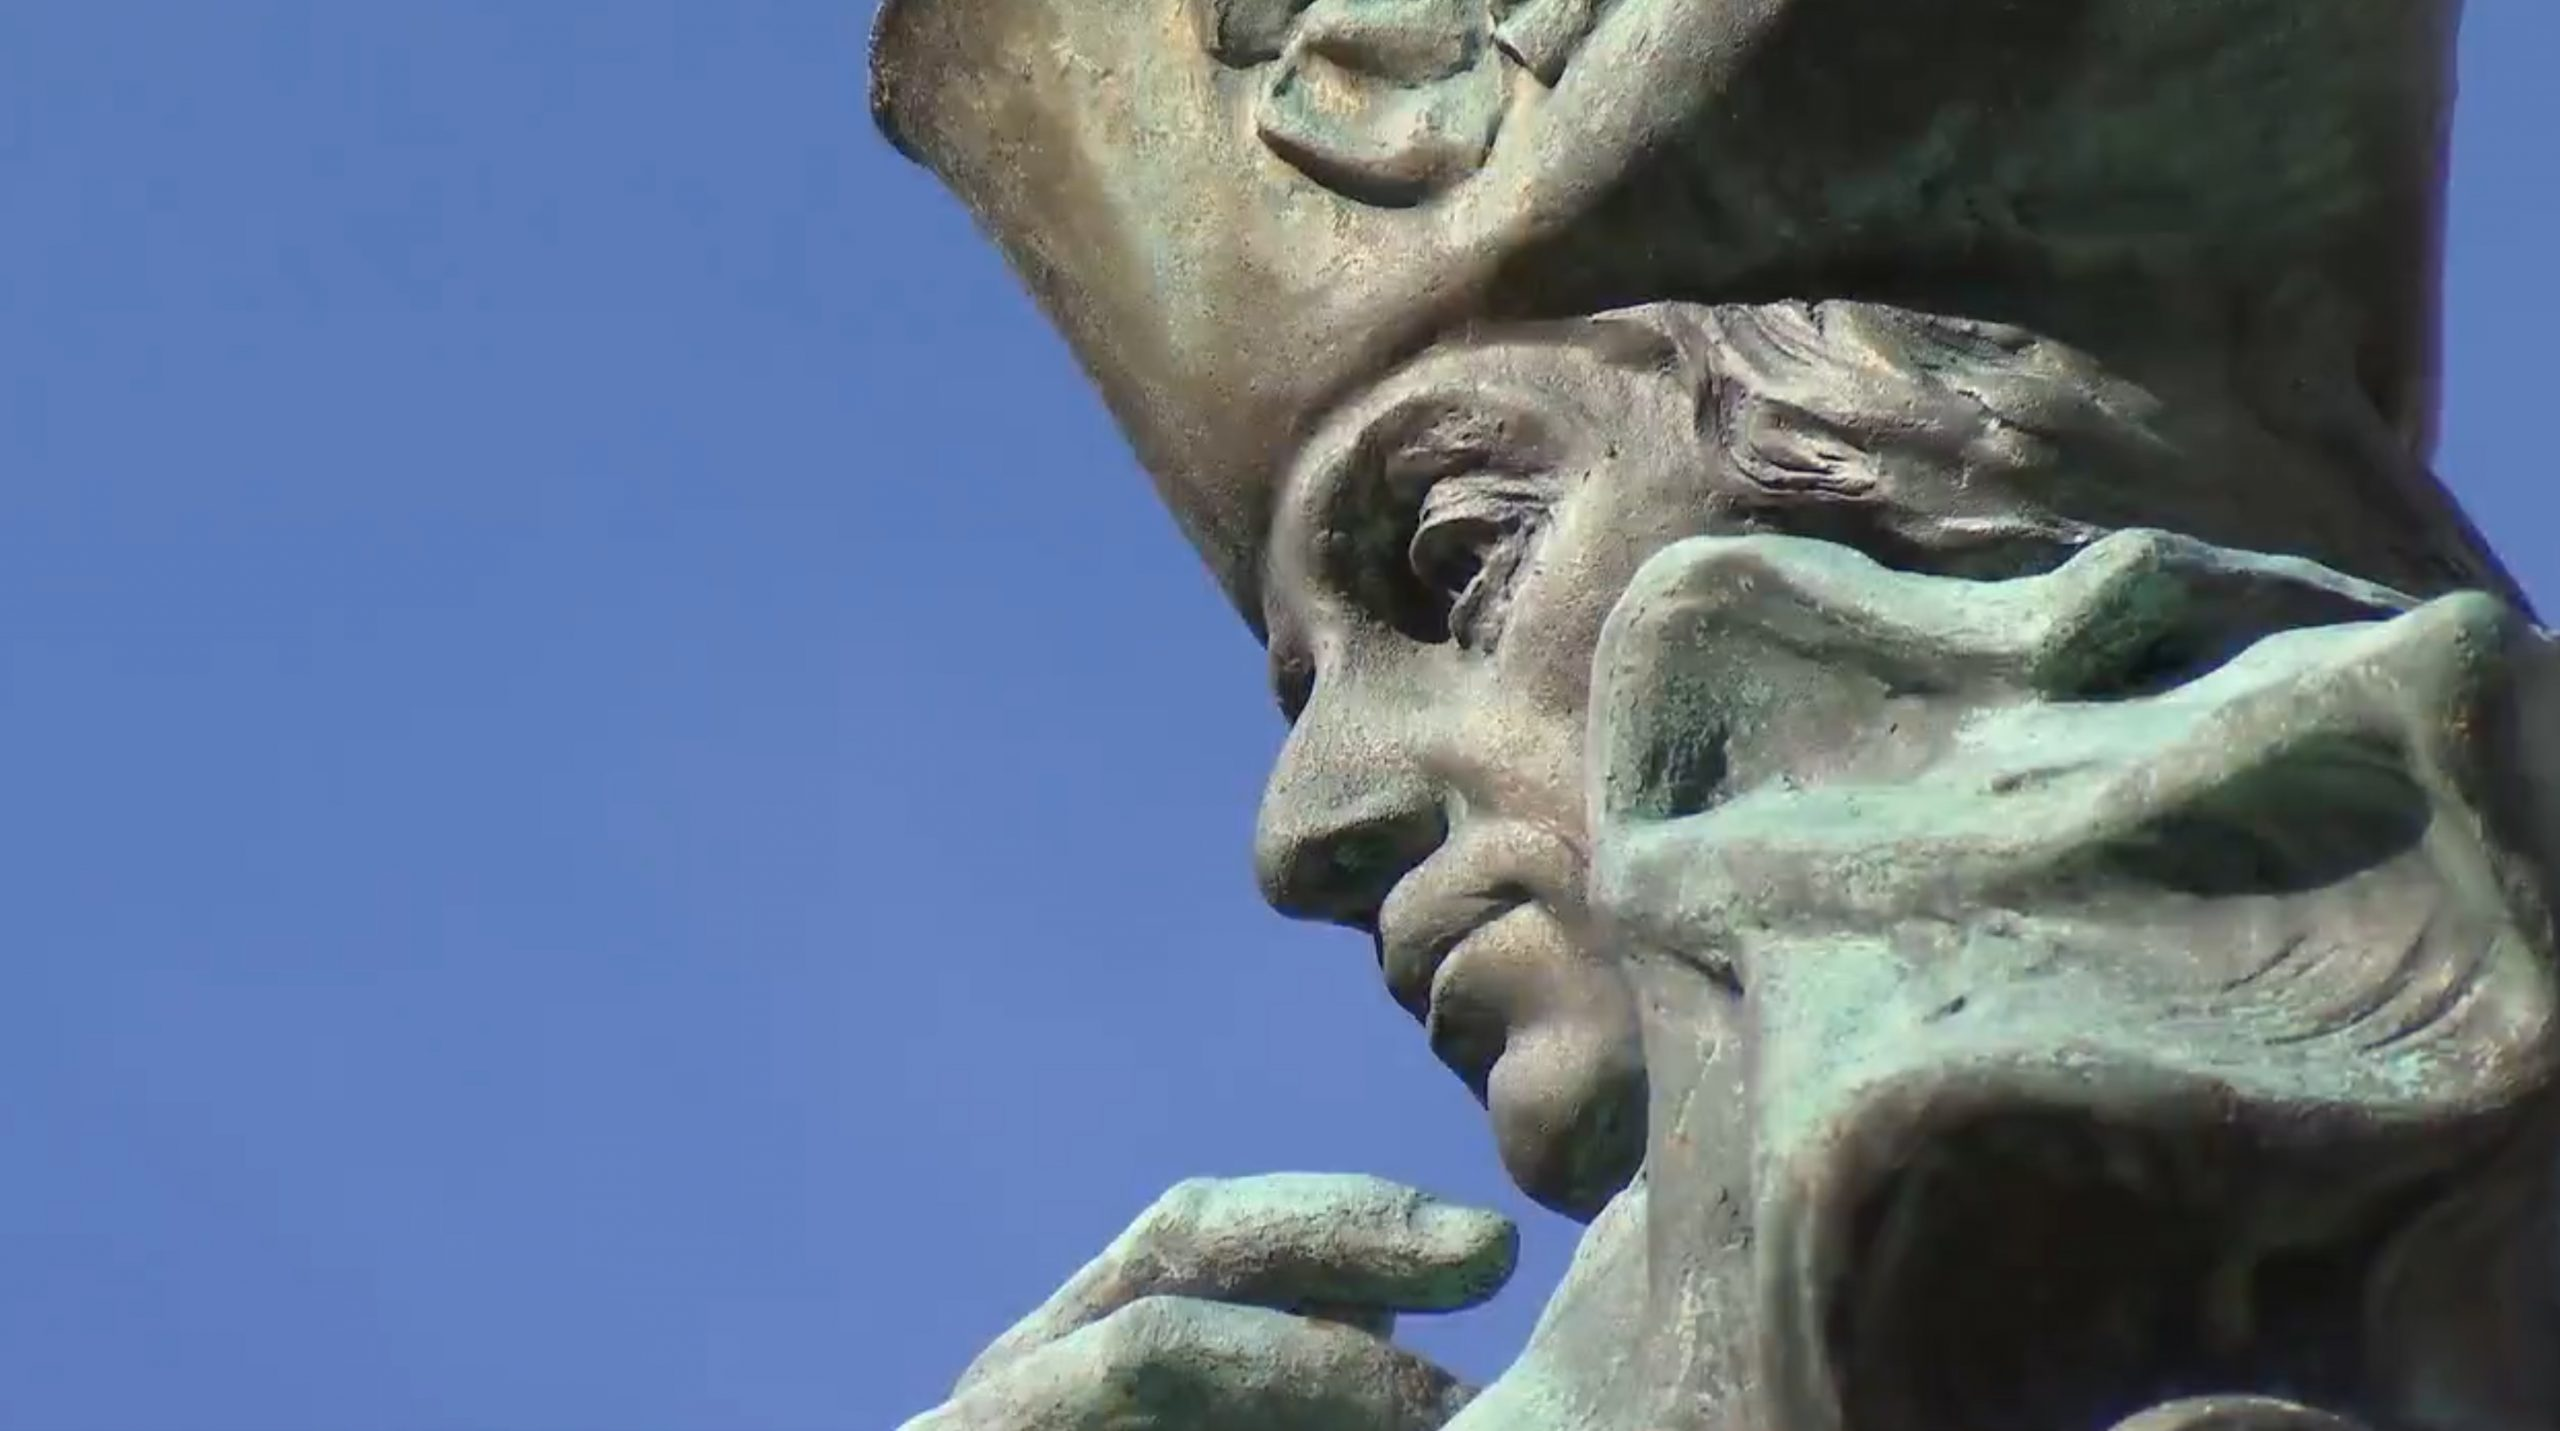 A closeup of the face of the Philip Schuyler statue in Albany, New York